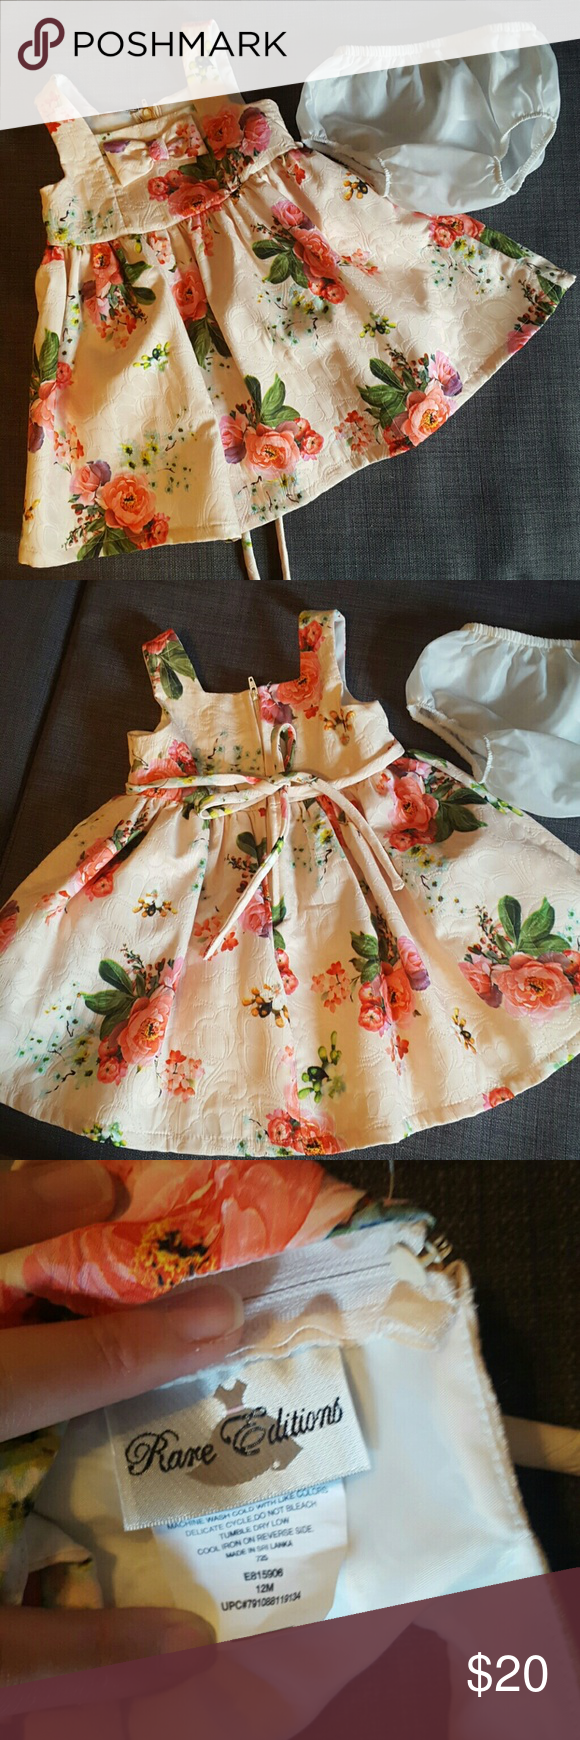 Girls dress 12 months Rare editions 12 months, 2 pc girls dress. Peach with roses pattern. Like new worn only 1-2 times. Rare Editions Dresses